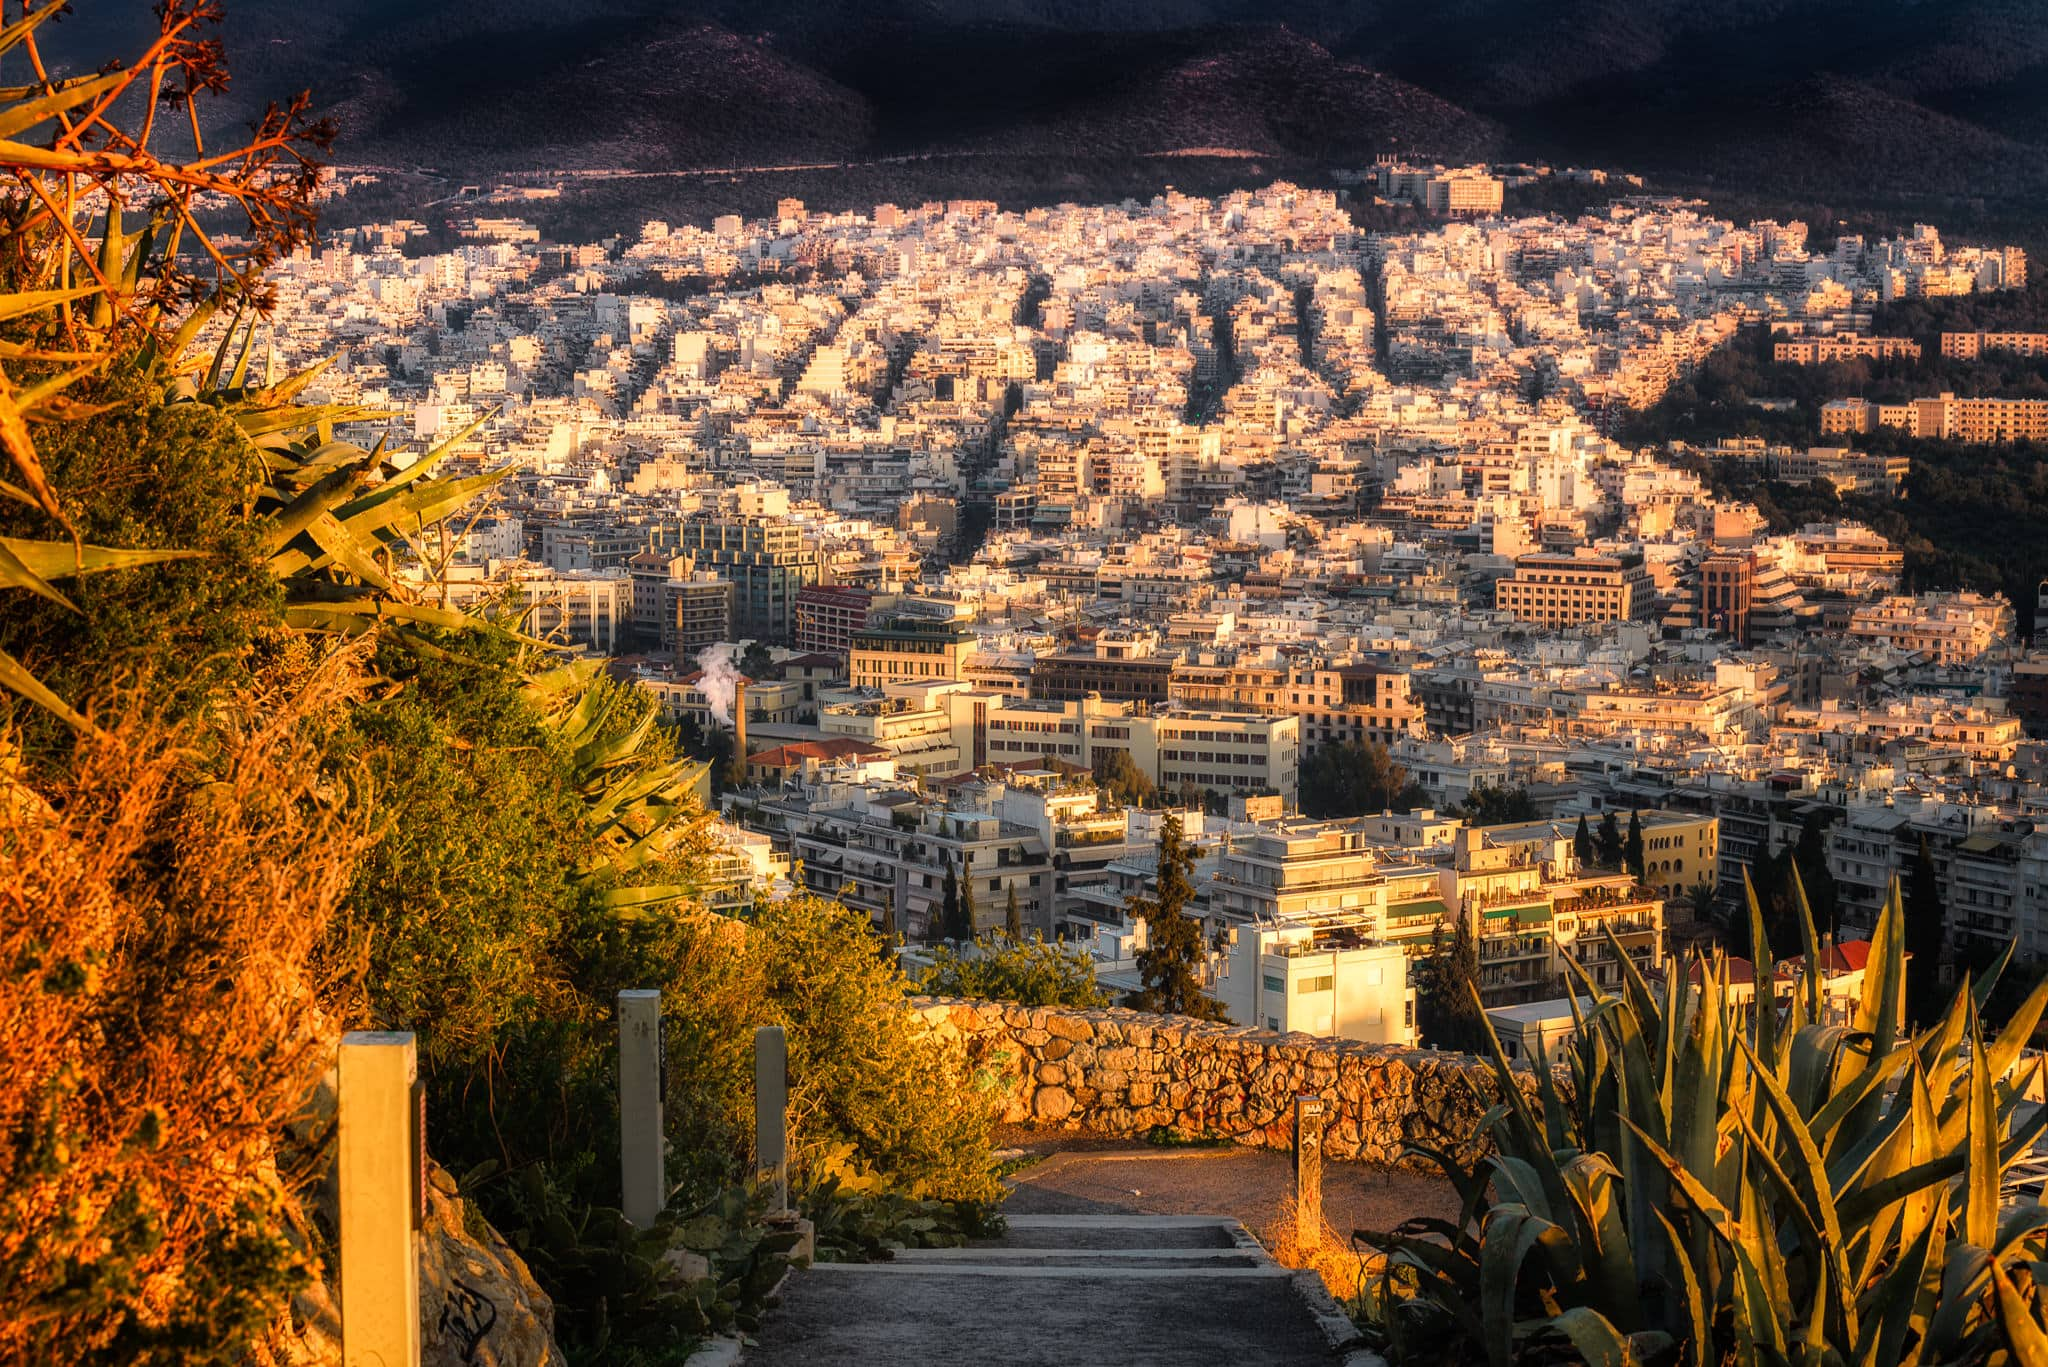 Panorama view of Athens in Greece, which looks like ancient Greek city.